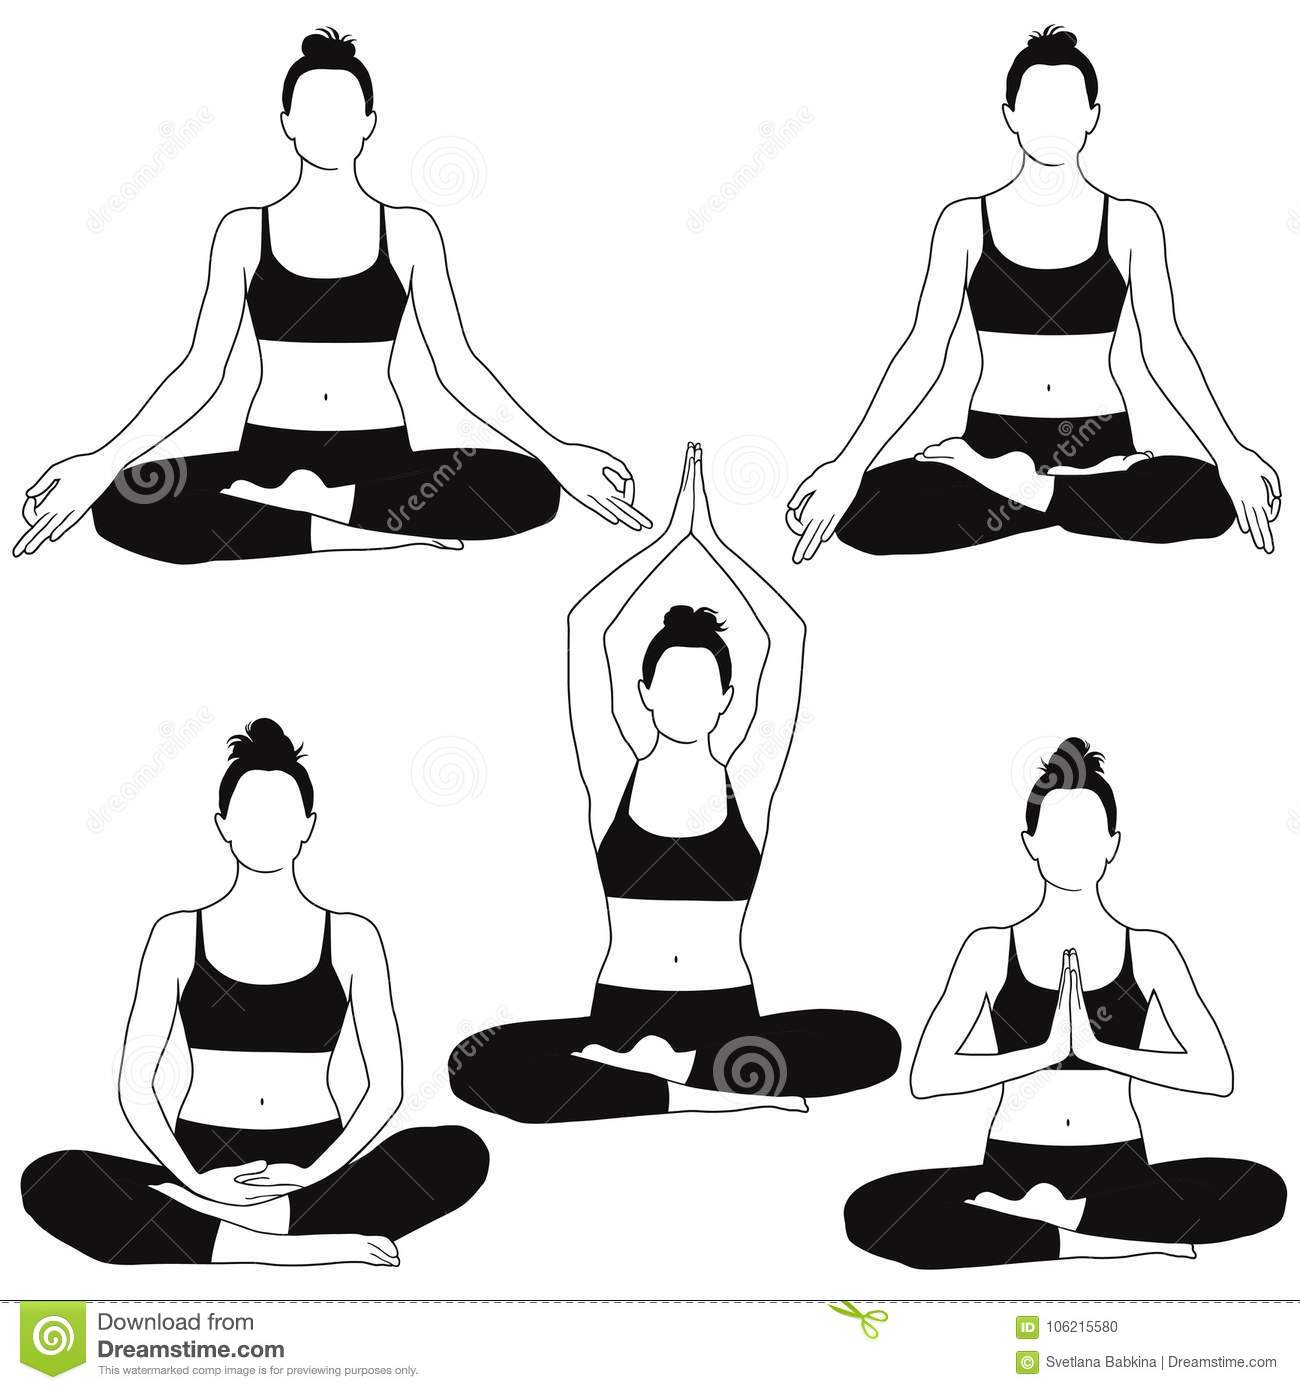 Silhouettes Of Woman Sitting In Meditation Yoga Pose Stock Vector Illustration Of Illustration Practice 106215580